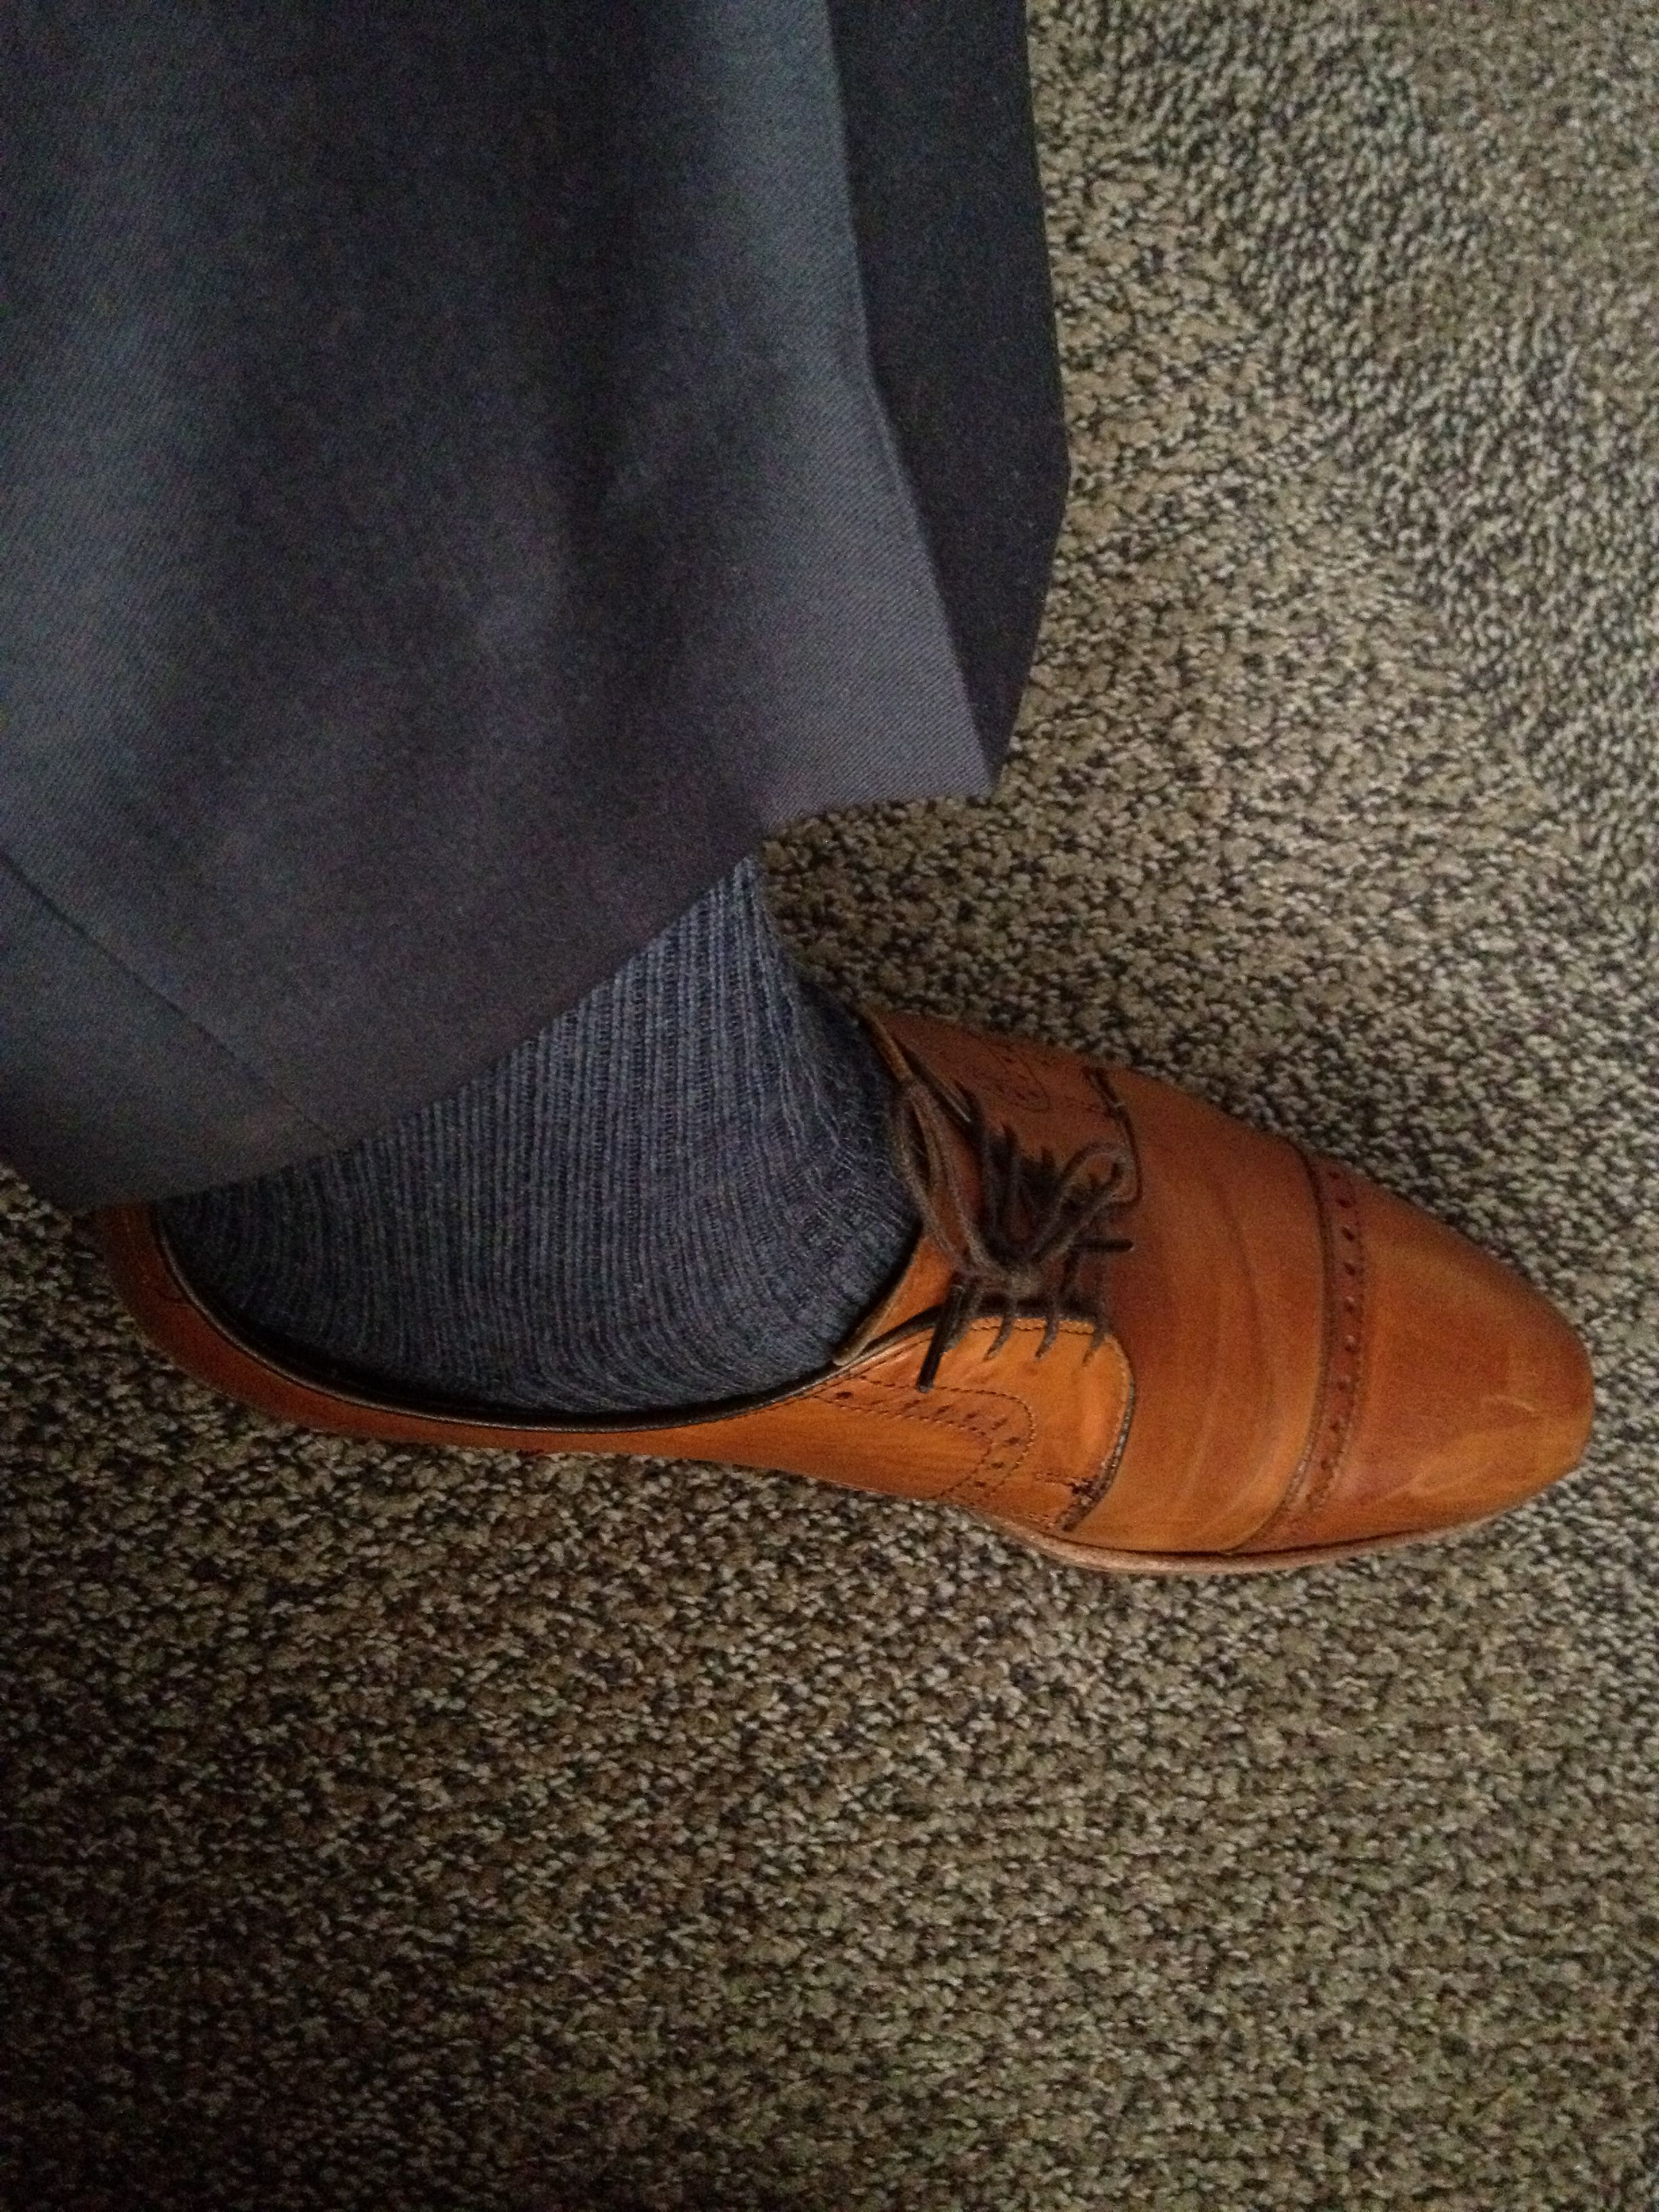 Pictures of boot socks with dress pants